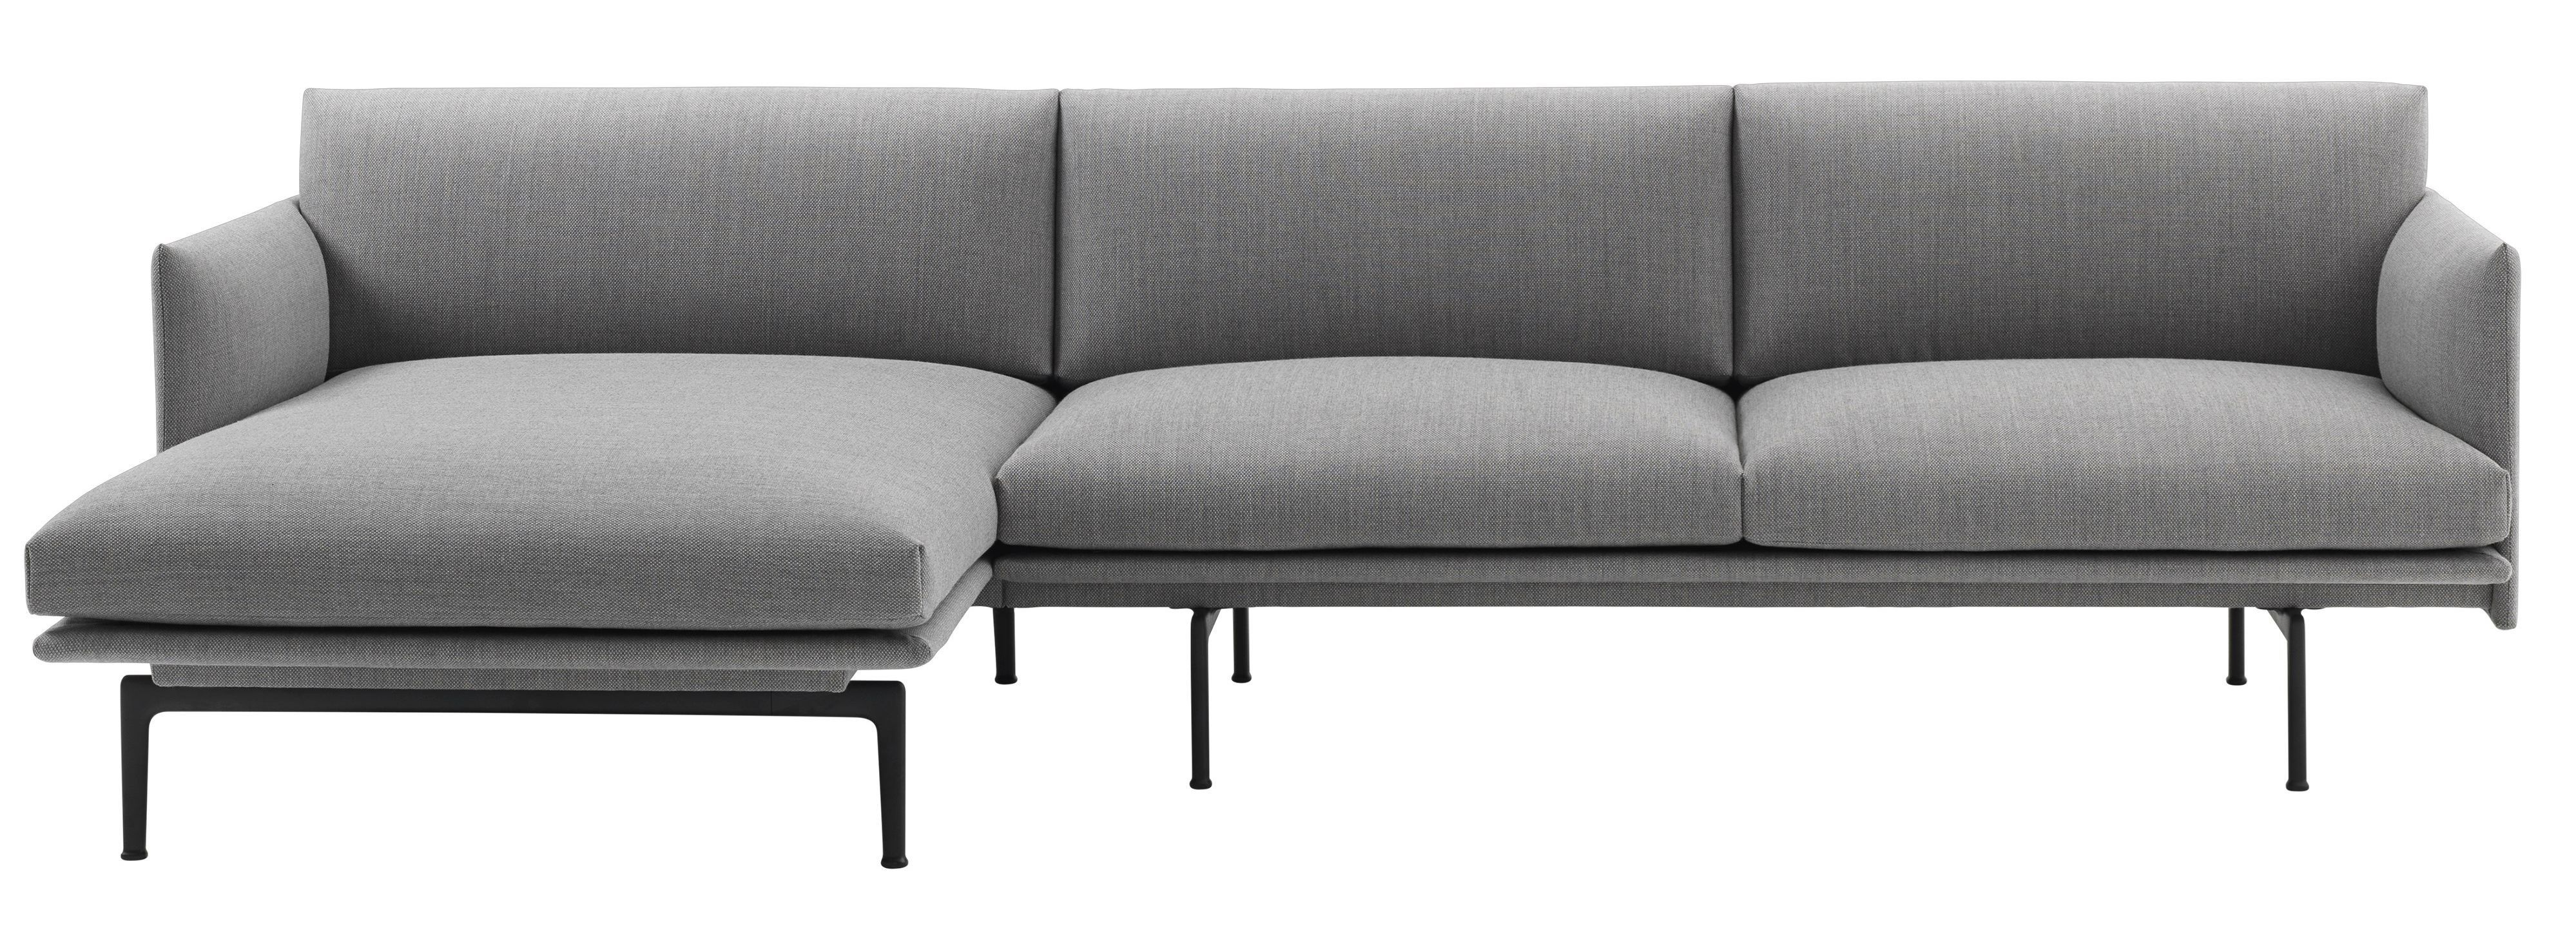 Hoekbank Chaise Lounge.Muuto Outline Bank 3 Zits Met Chaise Longue Links Flinders